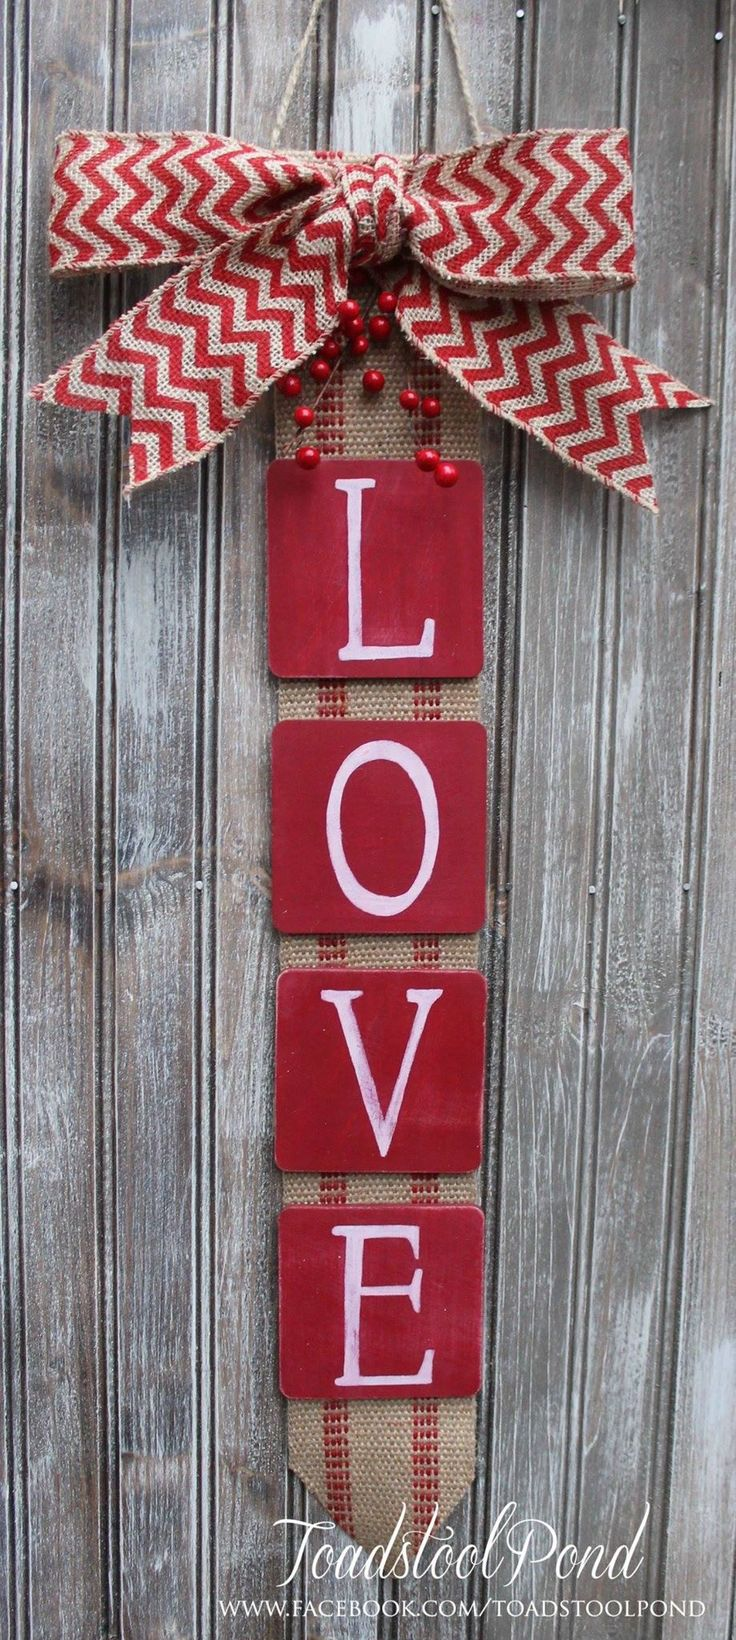 rustic love valentines wall hanging burlap chevron wreath alternative long wide features rustic webbing background burlap bow and red berry embellishment